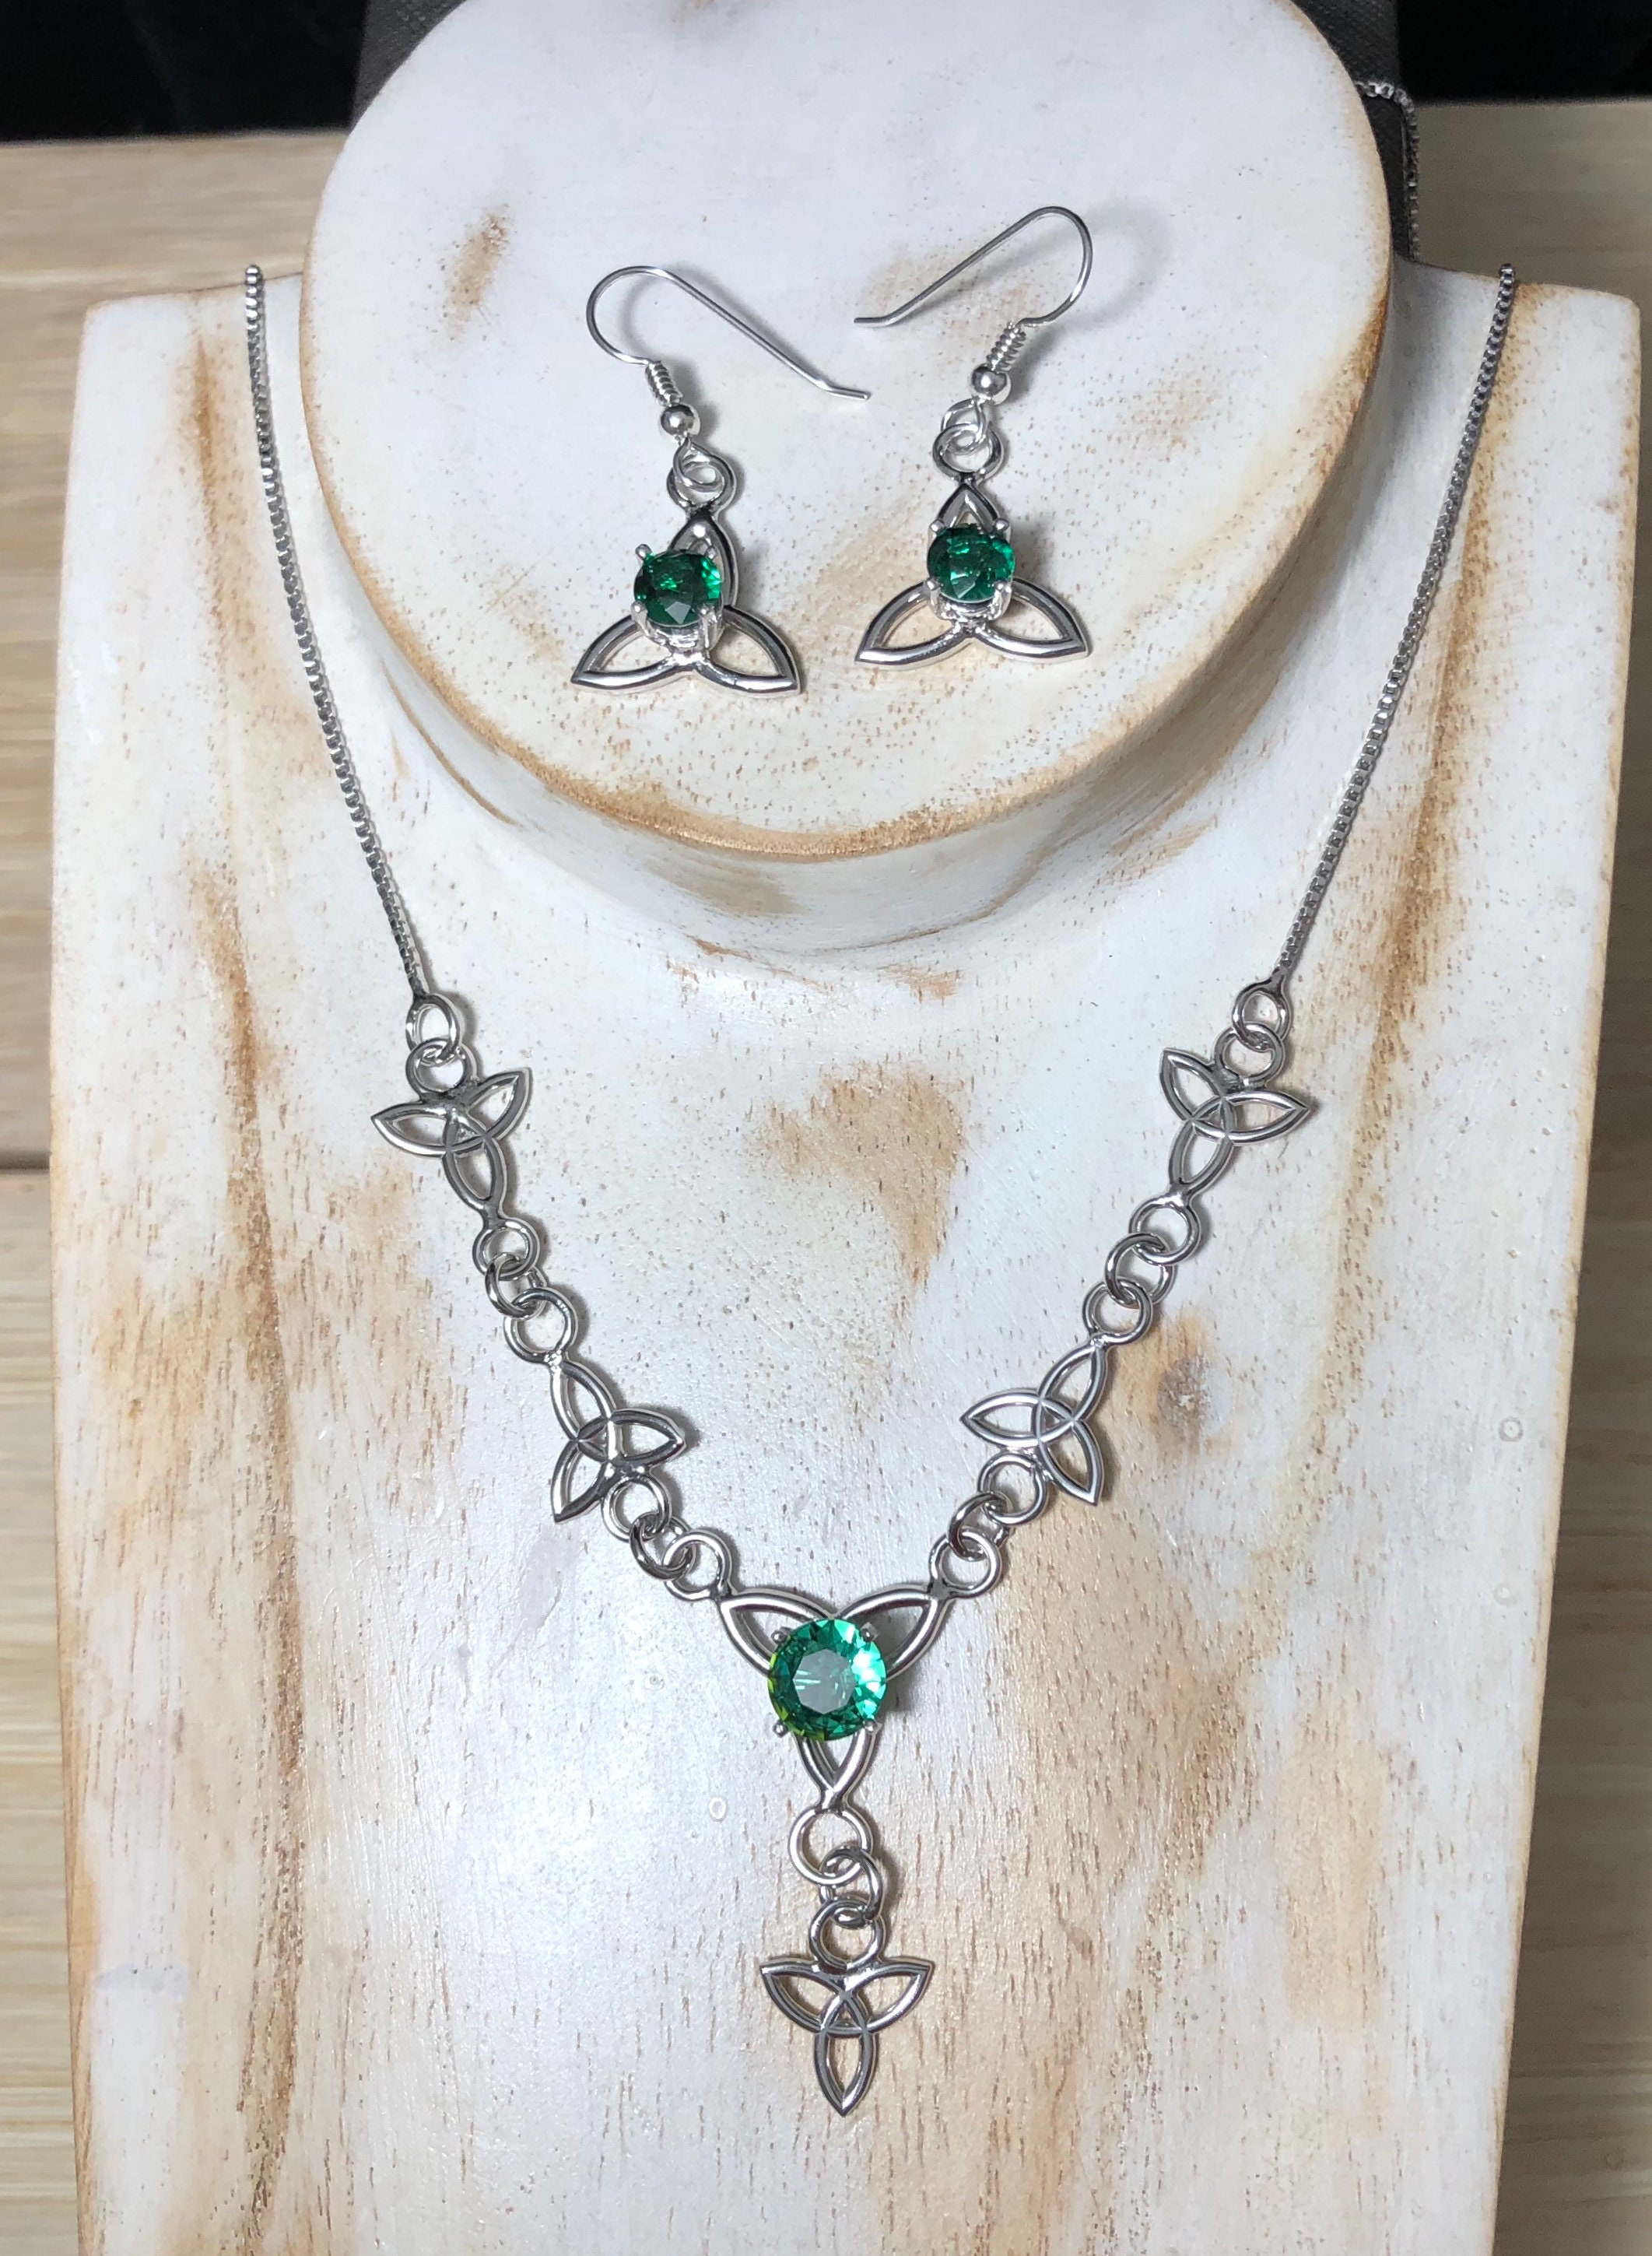 1d226ac3c Celtic Necklace and Earrings Set, Gifts For Her, Trinity Knot Gemstone  Necklace, Boho 18 Inch Necklace, 925 Sterling Silver Necklaces